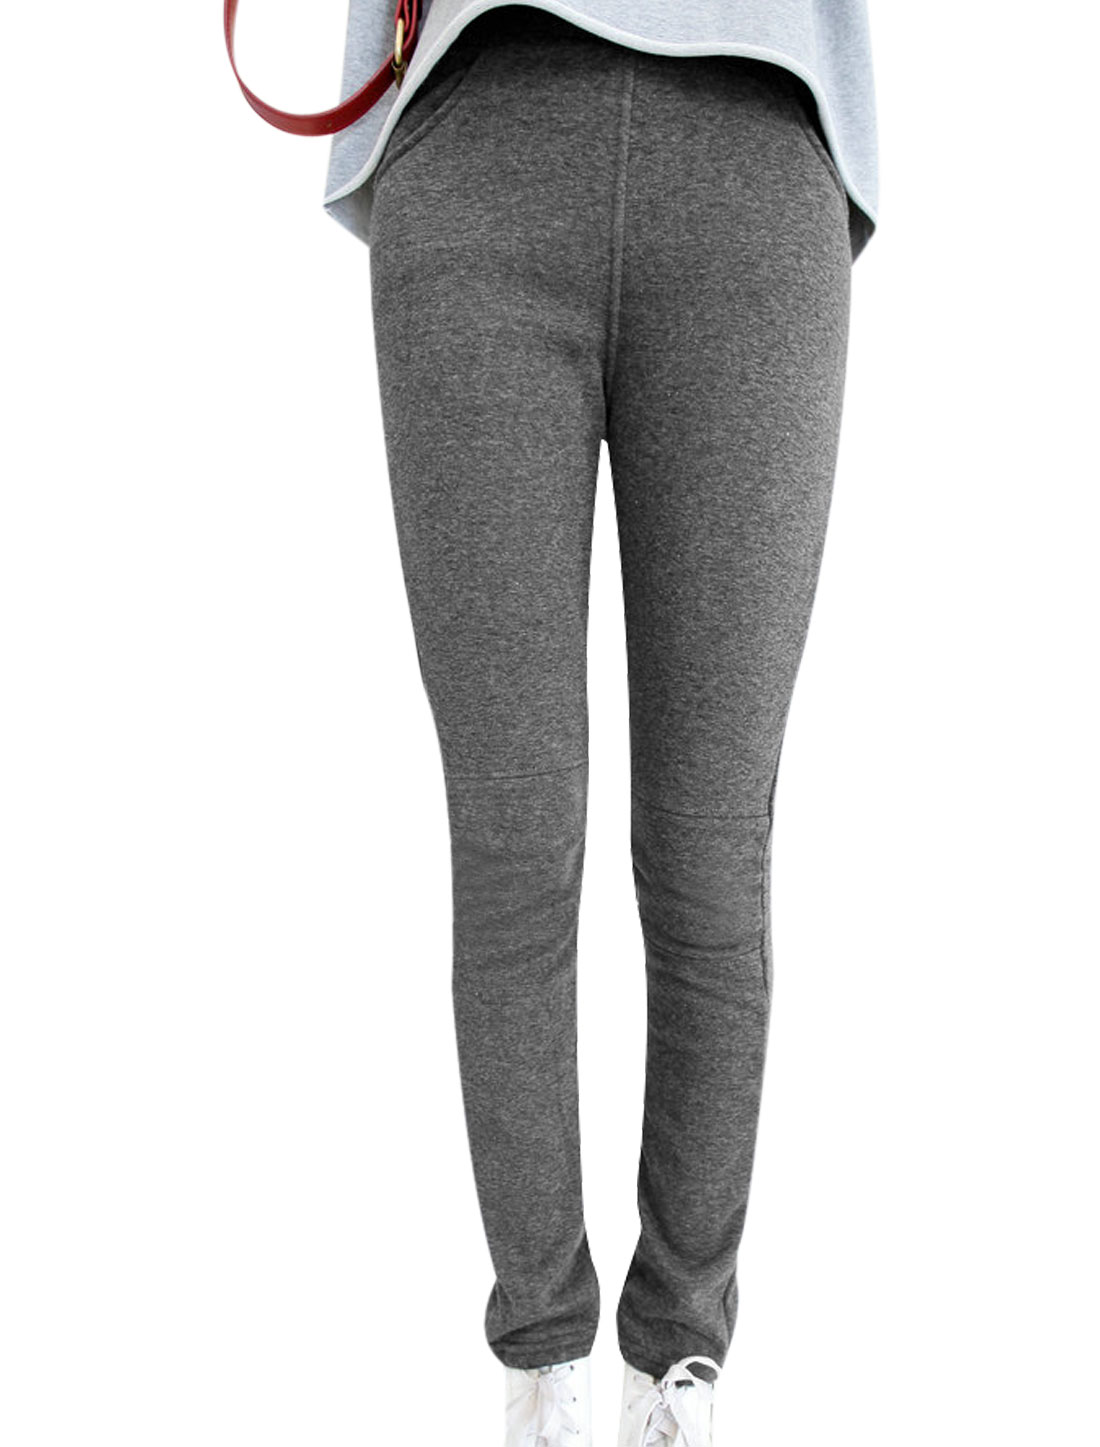 Ladies Dark Gray Mid Rise Elastic Waist Splice Detail Front Pockets Leggings XS